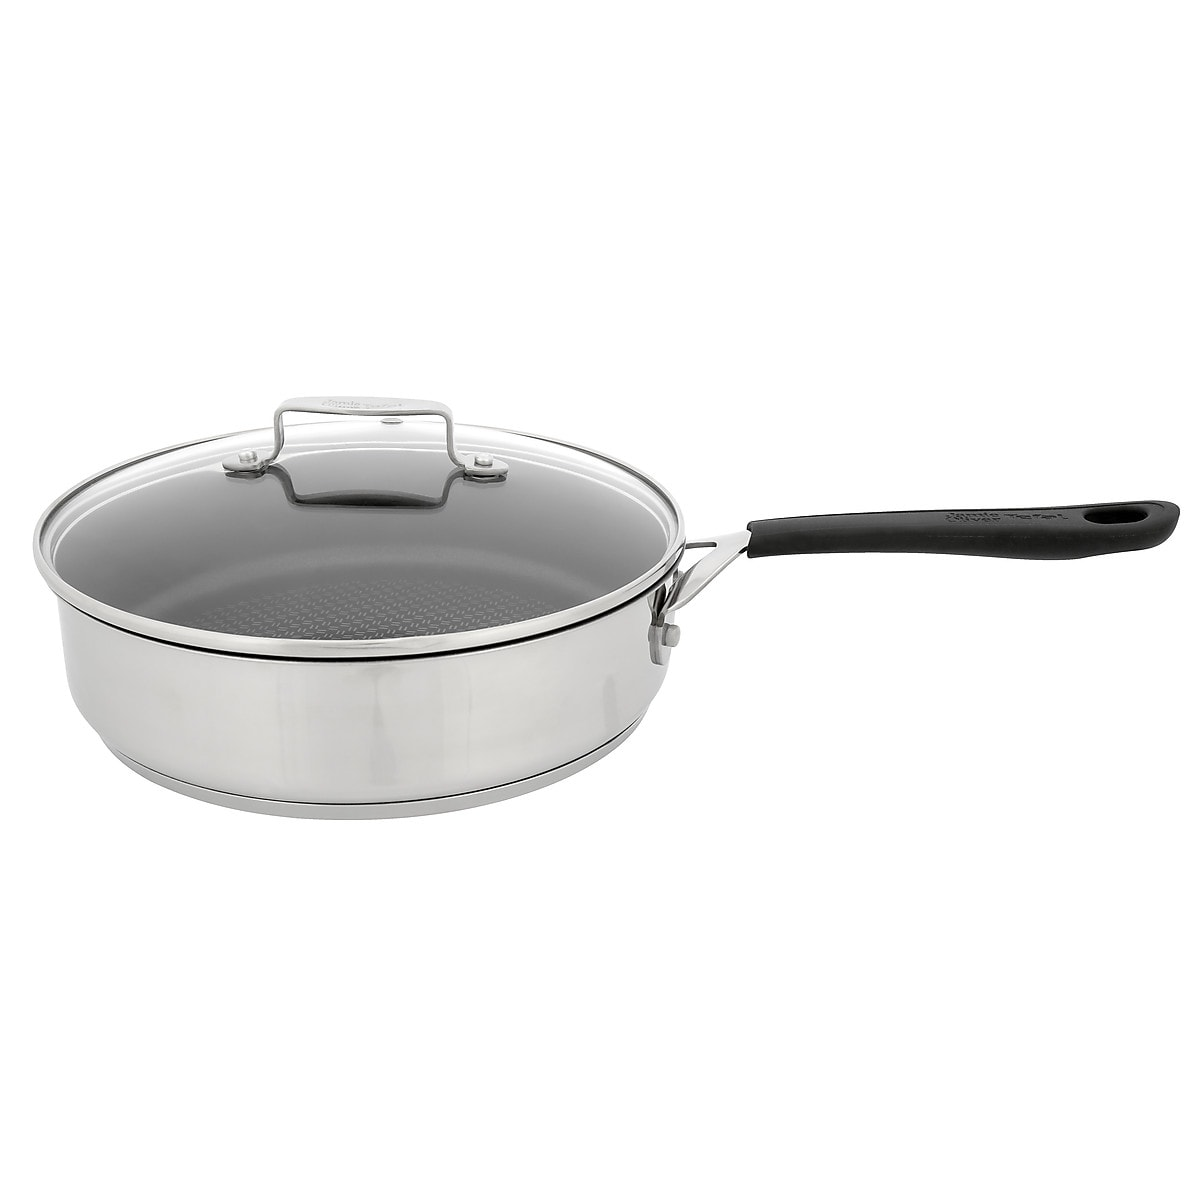 Jamie Oliver Everyday Stainless Steel 25 cm traktørpanne